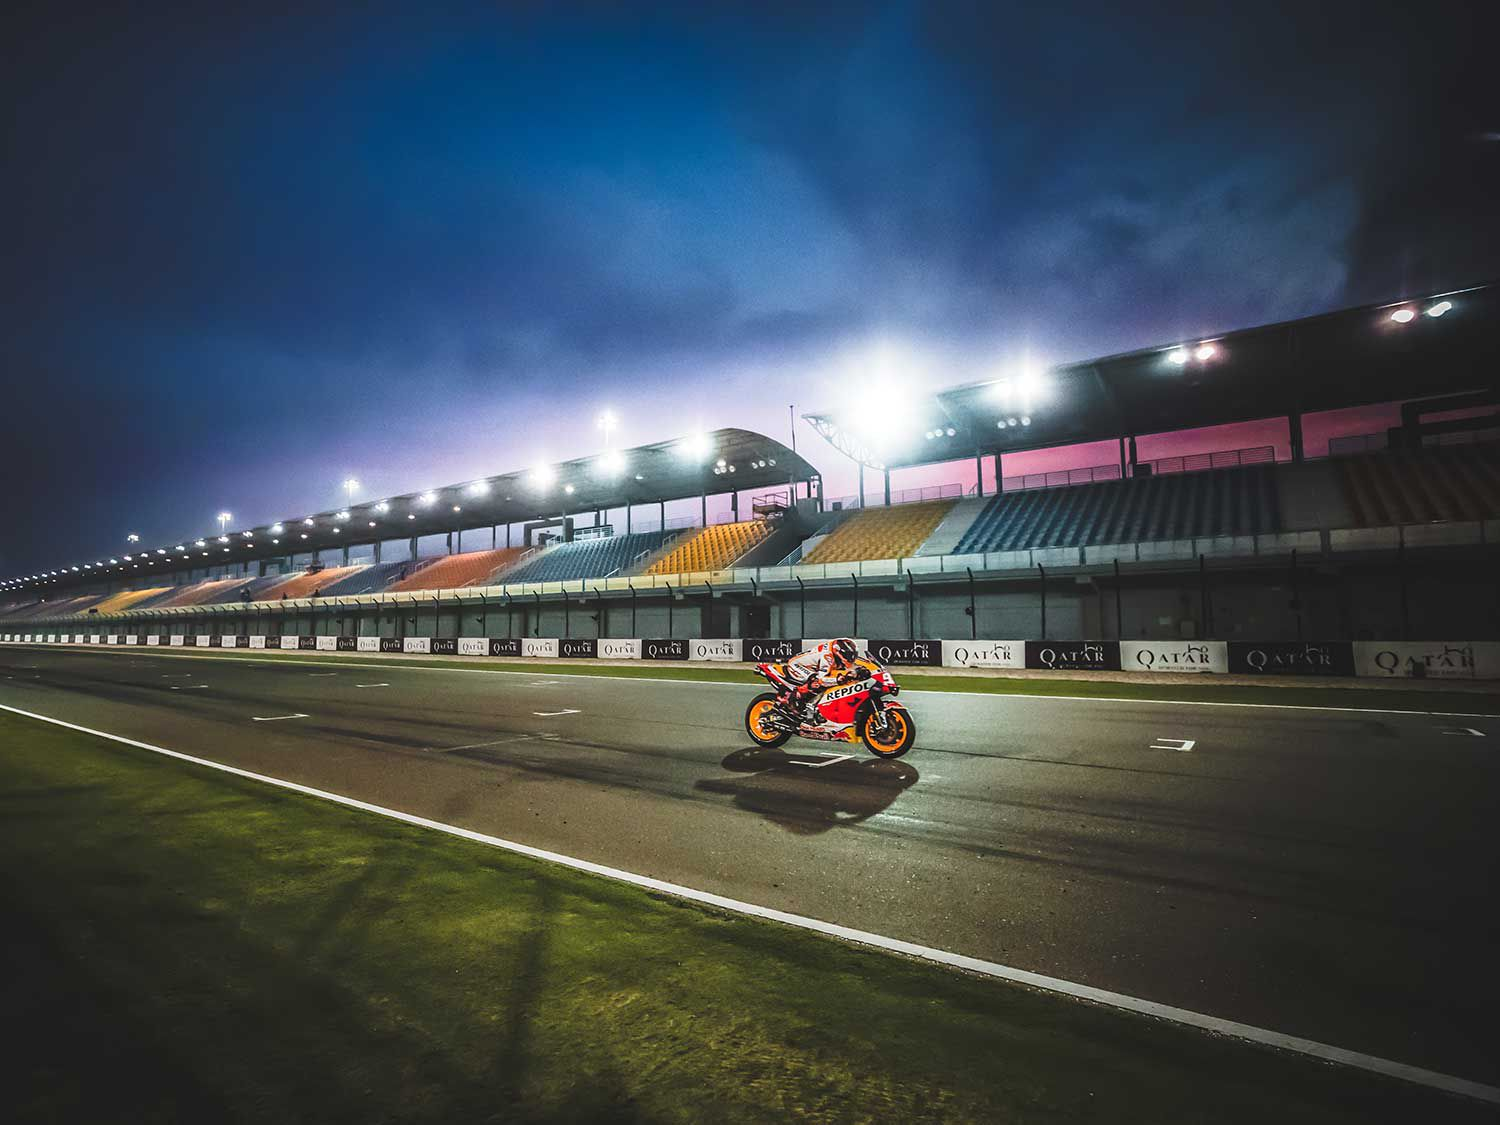 The MotoGP class won't be kicking off the 2020 season under the lights of Losail, as concerns over the coronavirus outbreak have forced officials to cancel the event.